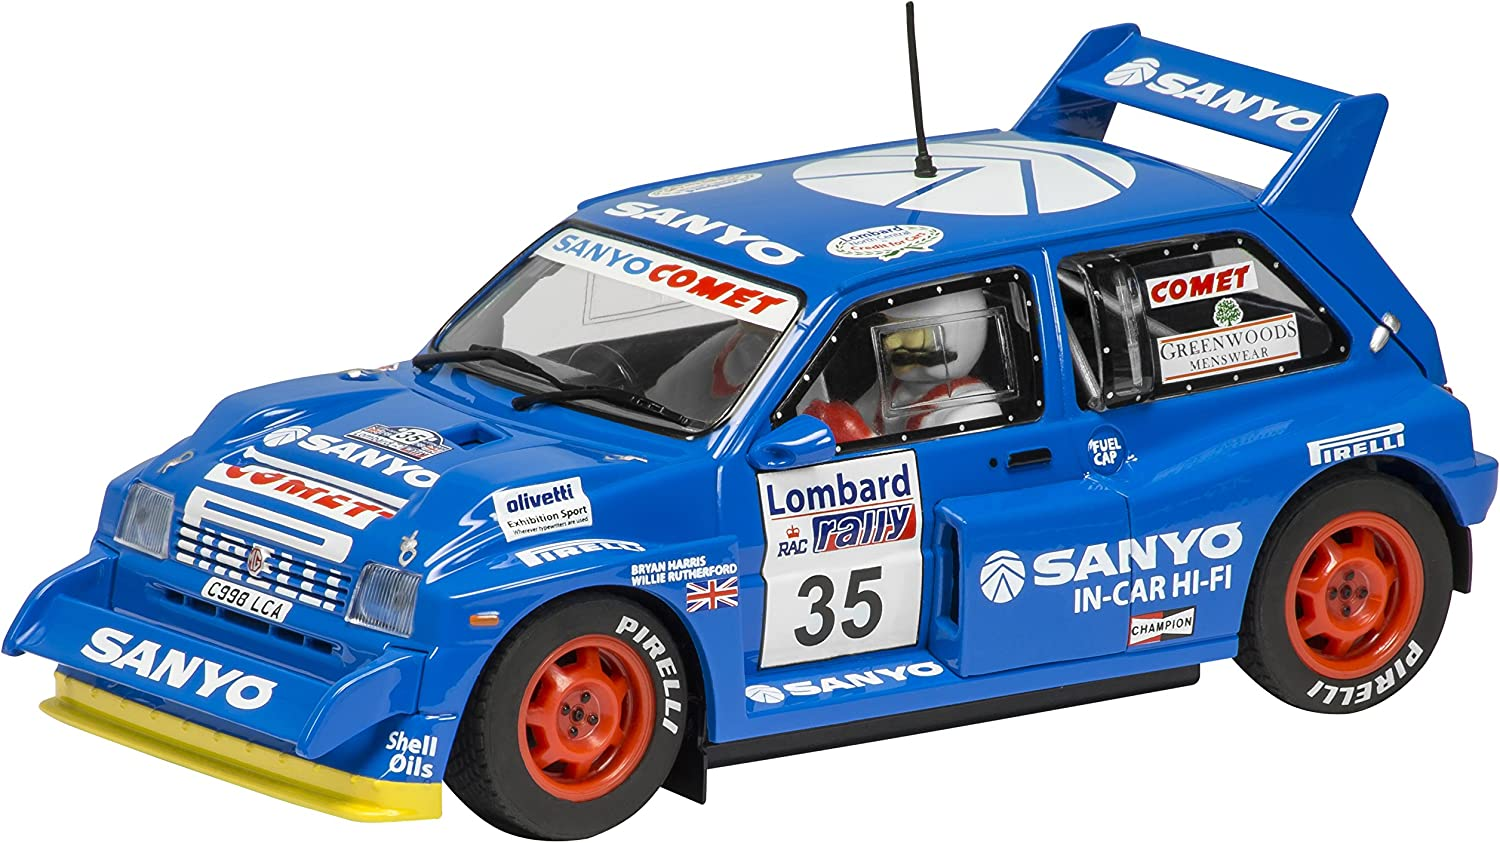 Sacramento Mall Outstanding Scalextric C3639 MG Metro 6R4 #35 1:32 Scale Slot Car